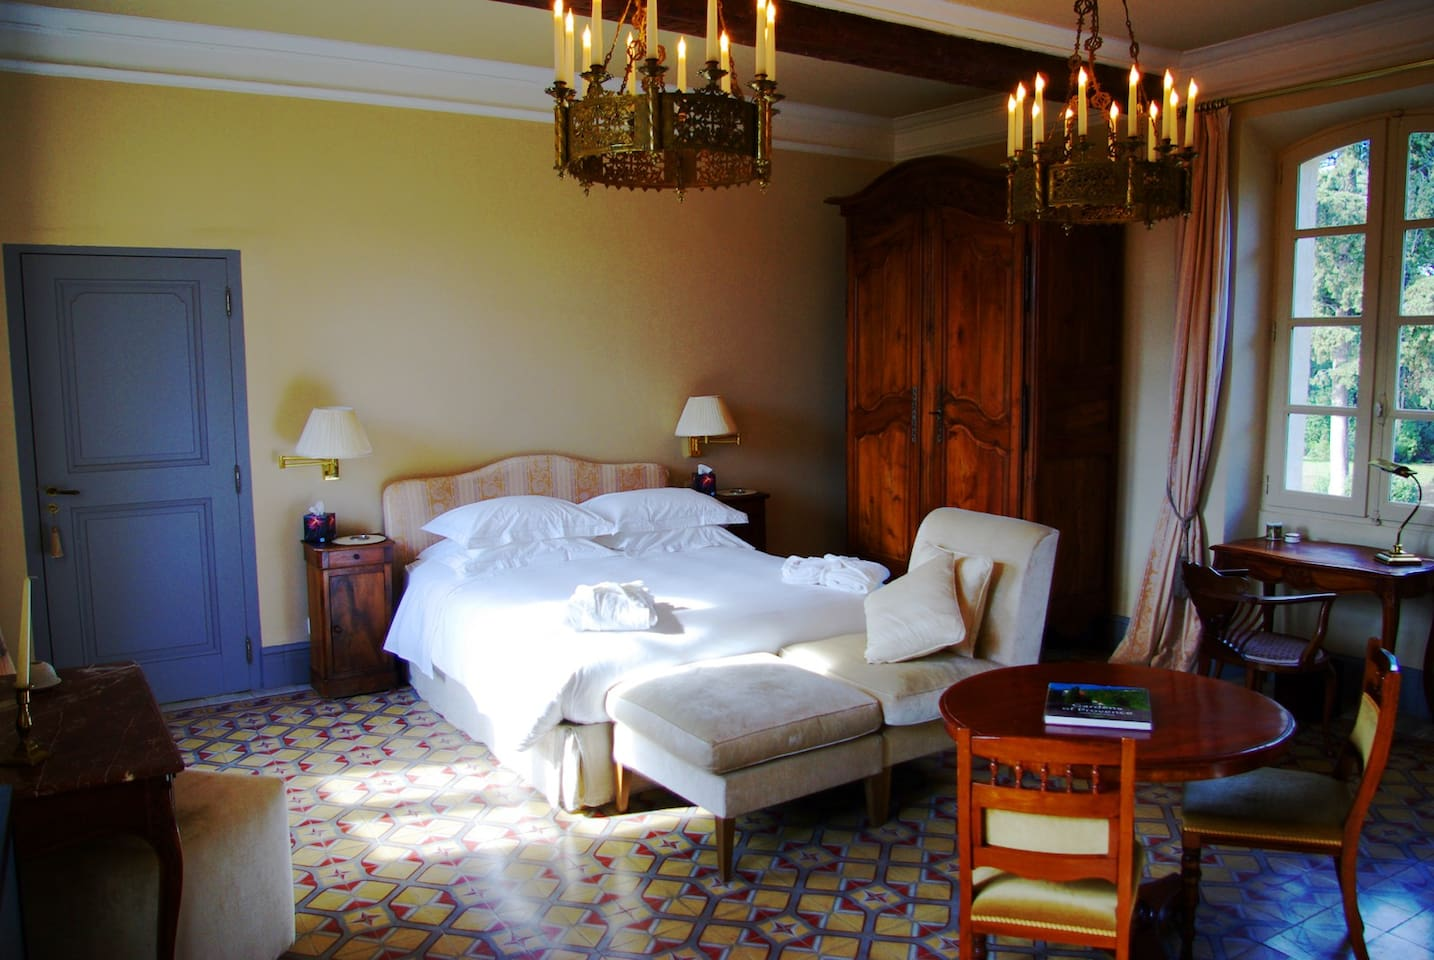 Autan - our most spacious guest room with large double bed, ensuite bathroom and views over both sides of the domaine.